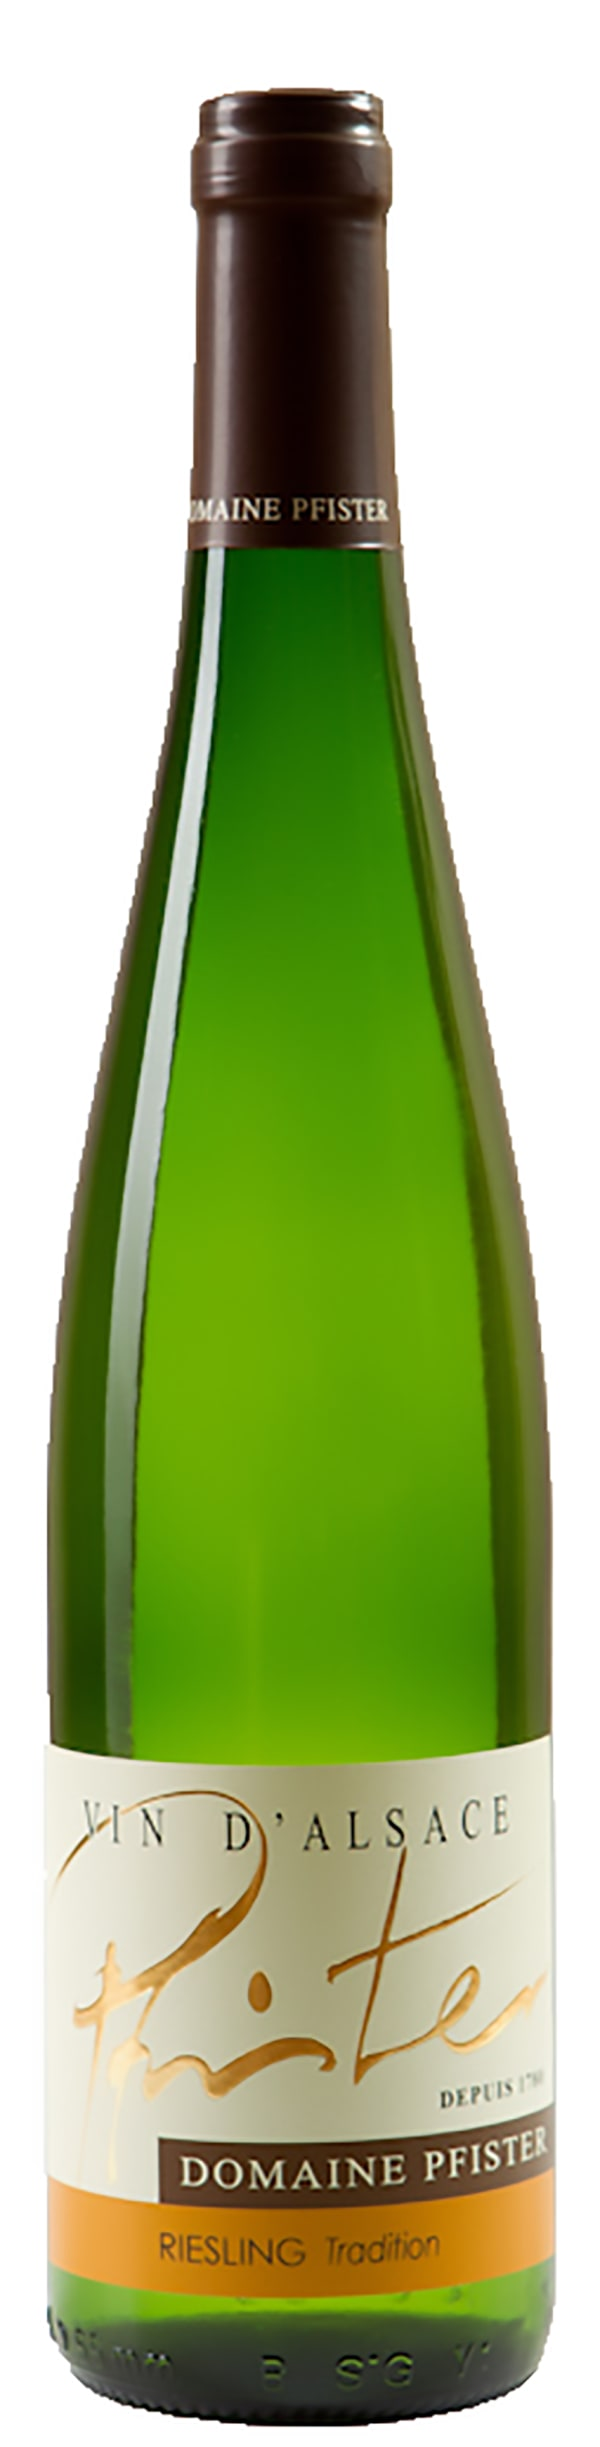 Domaine Pfister Riesling 2014